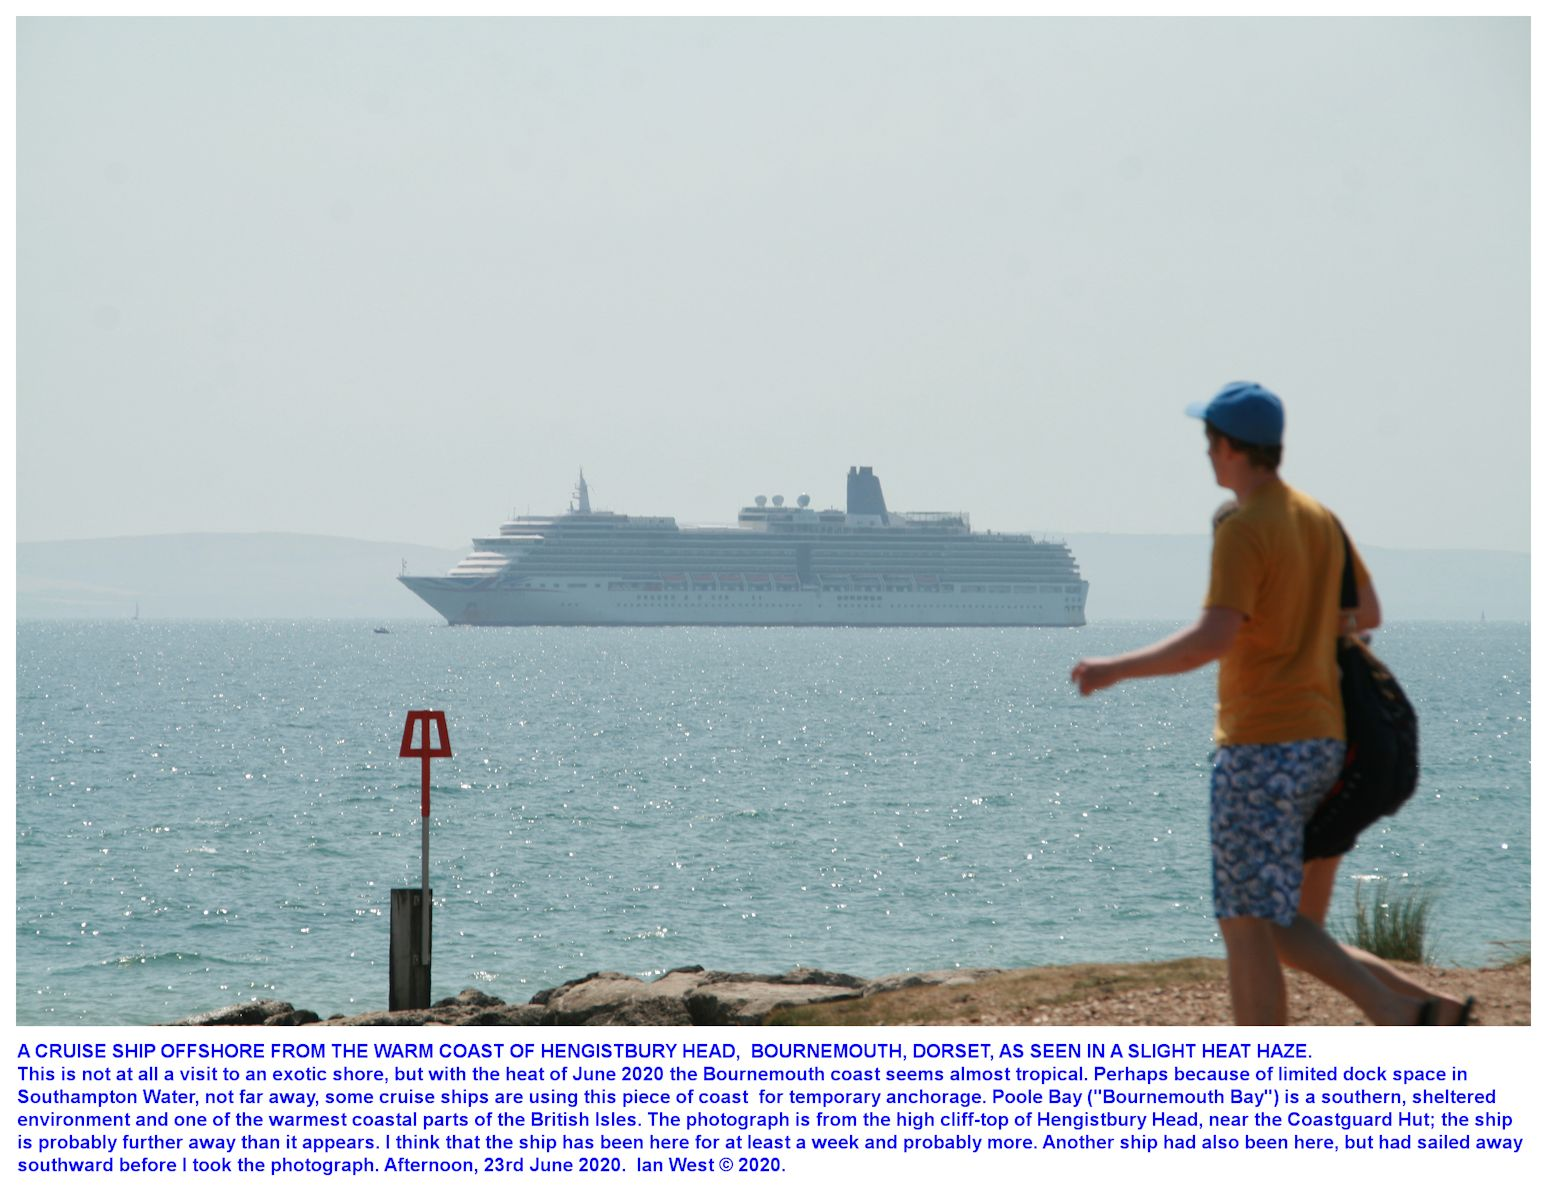 Seen from the cliff top of Hengistbury Head, near the old look-out hut, - offshore -  a cruise ship, not in use because of the pandemic in July 2020, and remaining idle and anchored in Poole Bay